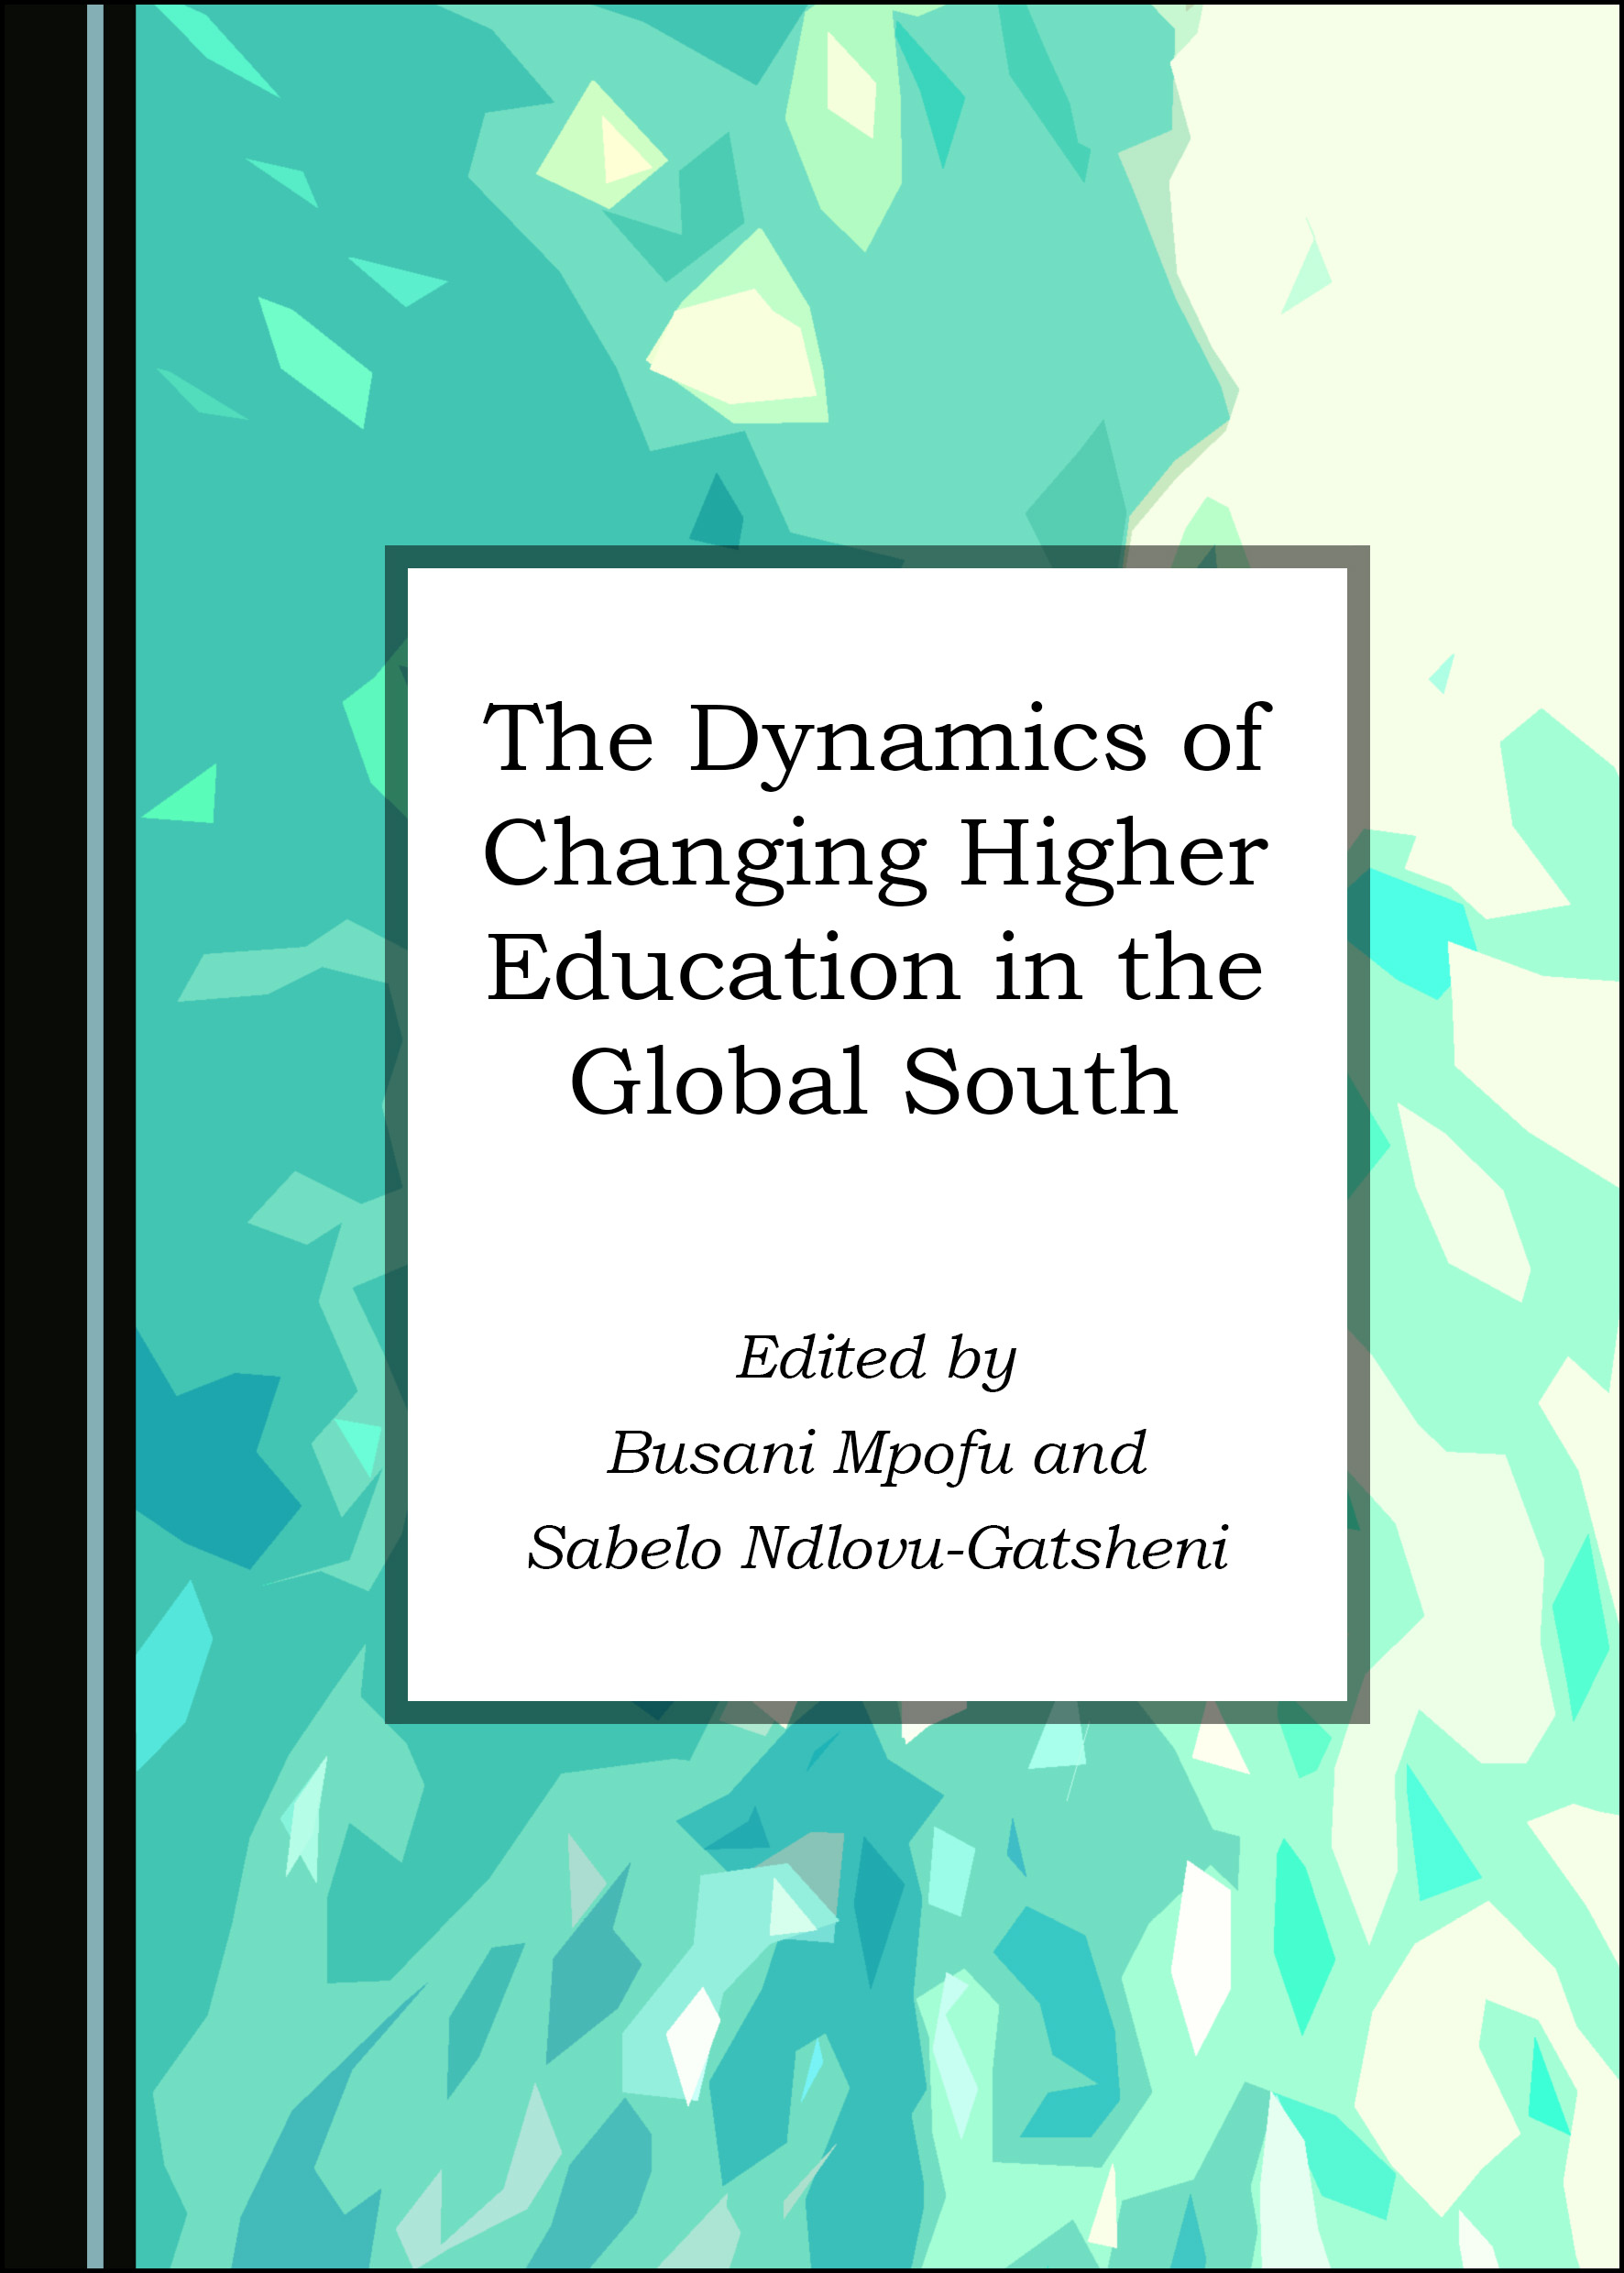 The Dynamics of Changing Higher Education in the Global South